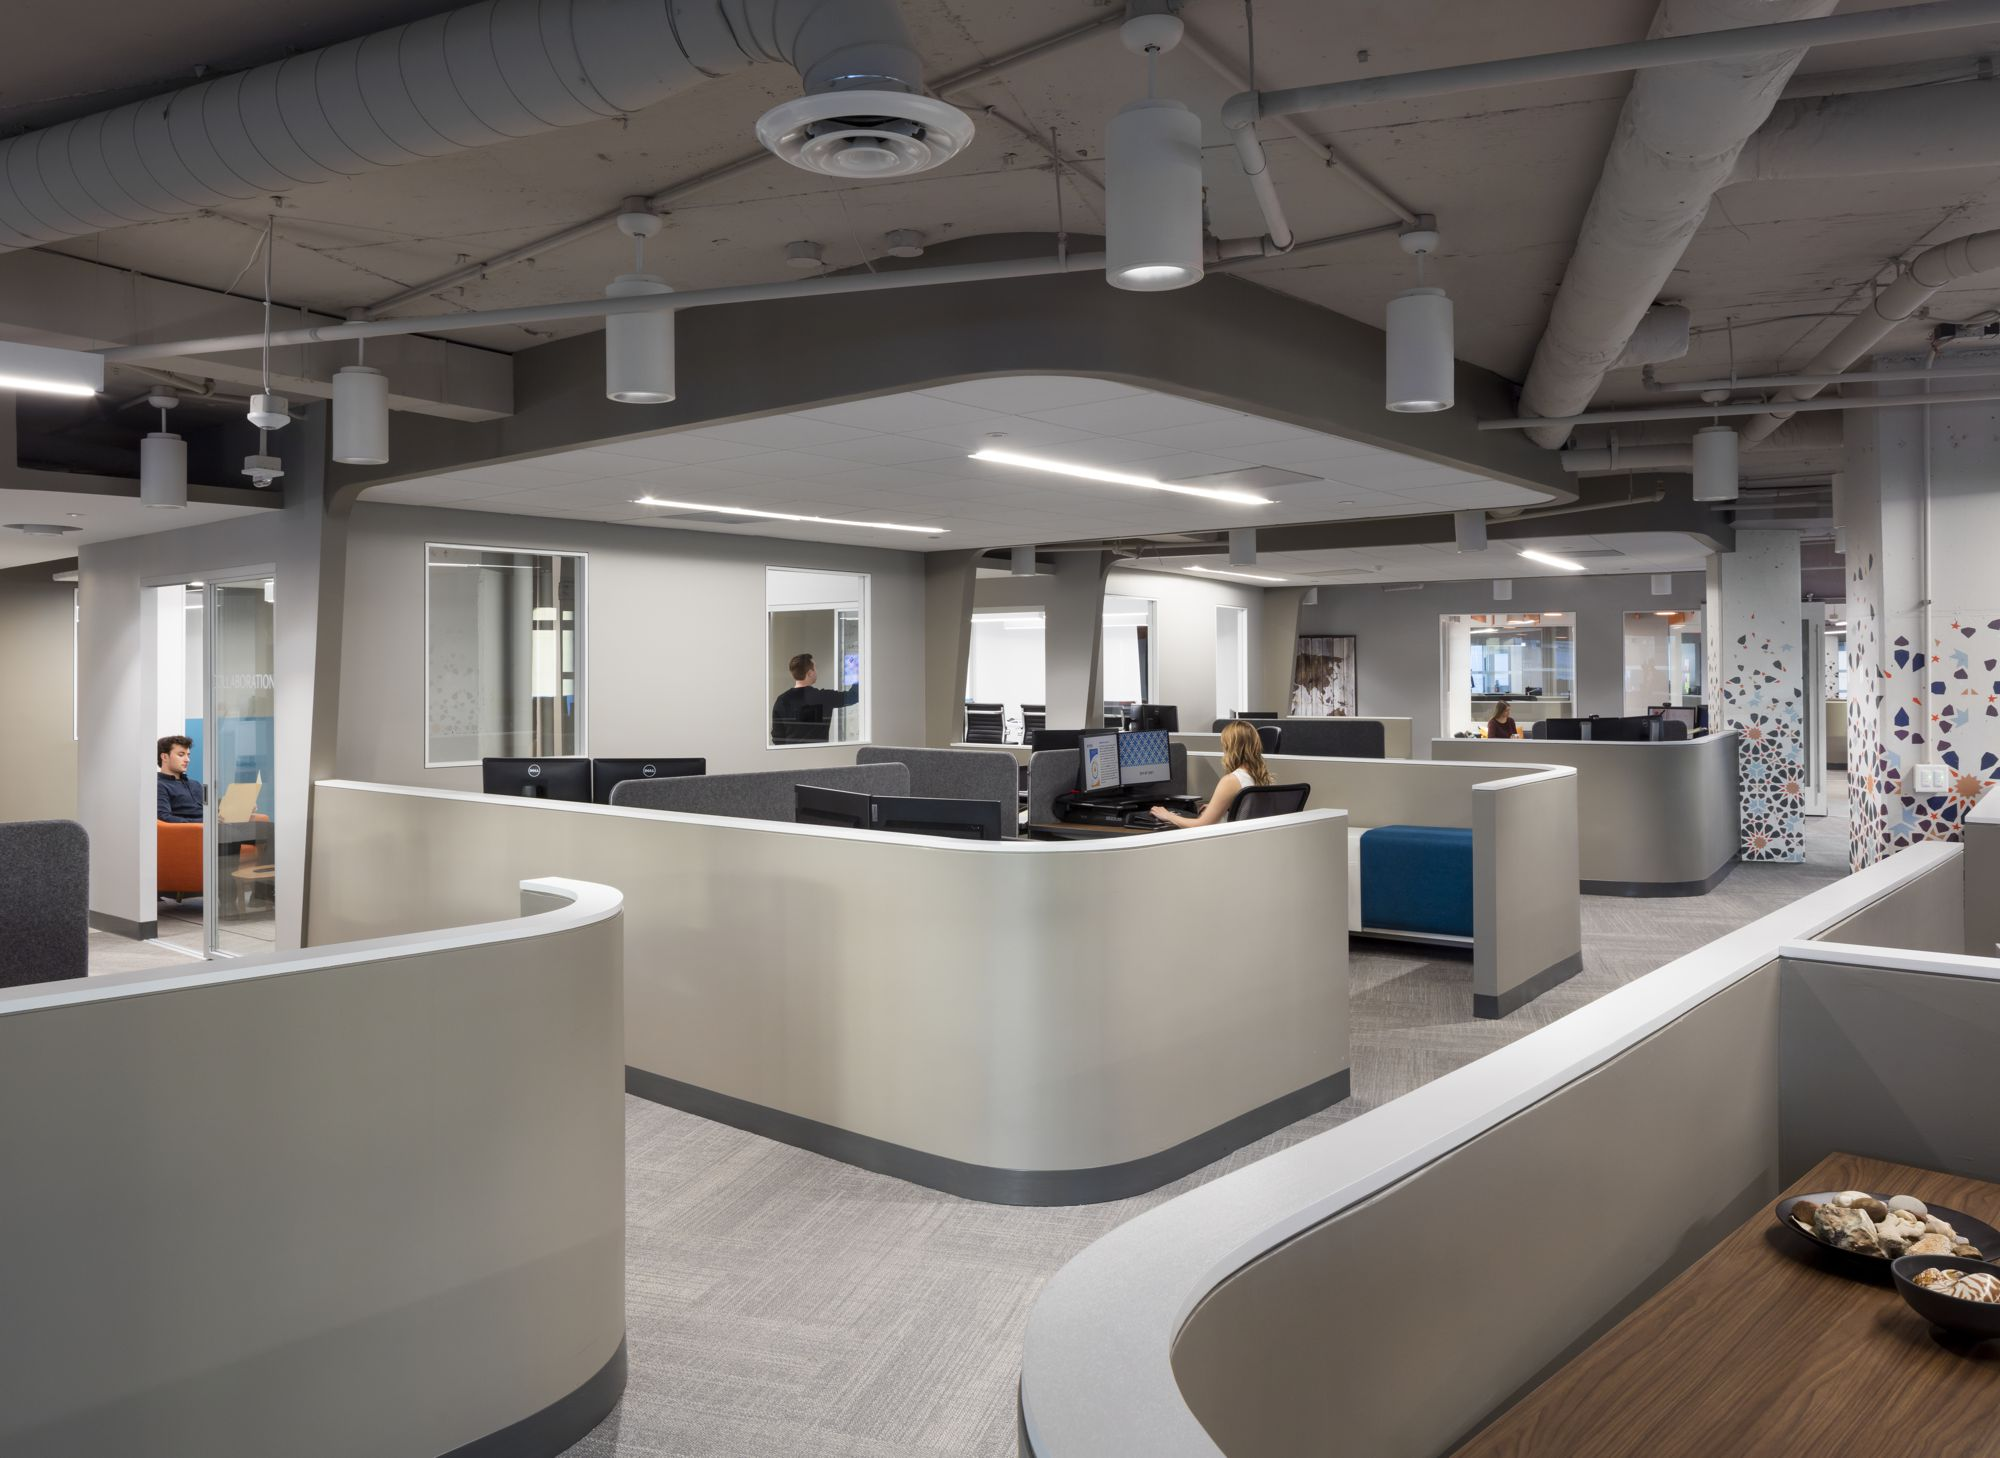 The open workstations are gathered into groups of 4 with dropped ceilings above for better acoustics, and to create a sense of place.  The curved walls create gracious circulation pathways through the area, but allow for greater distance between individual seats to allow for greater concentration.